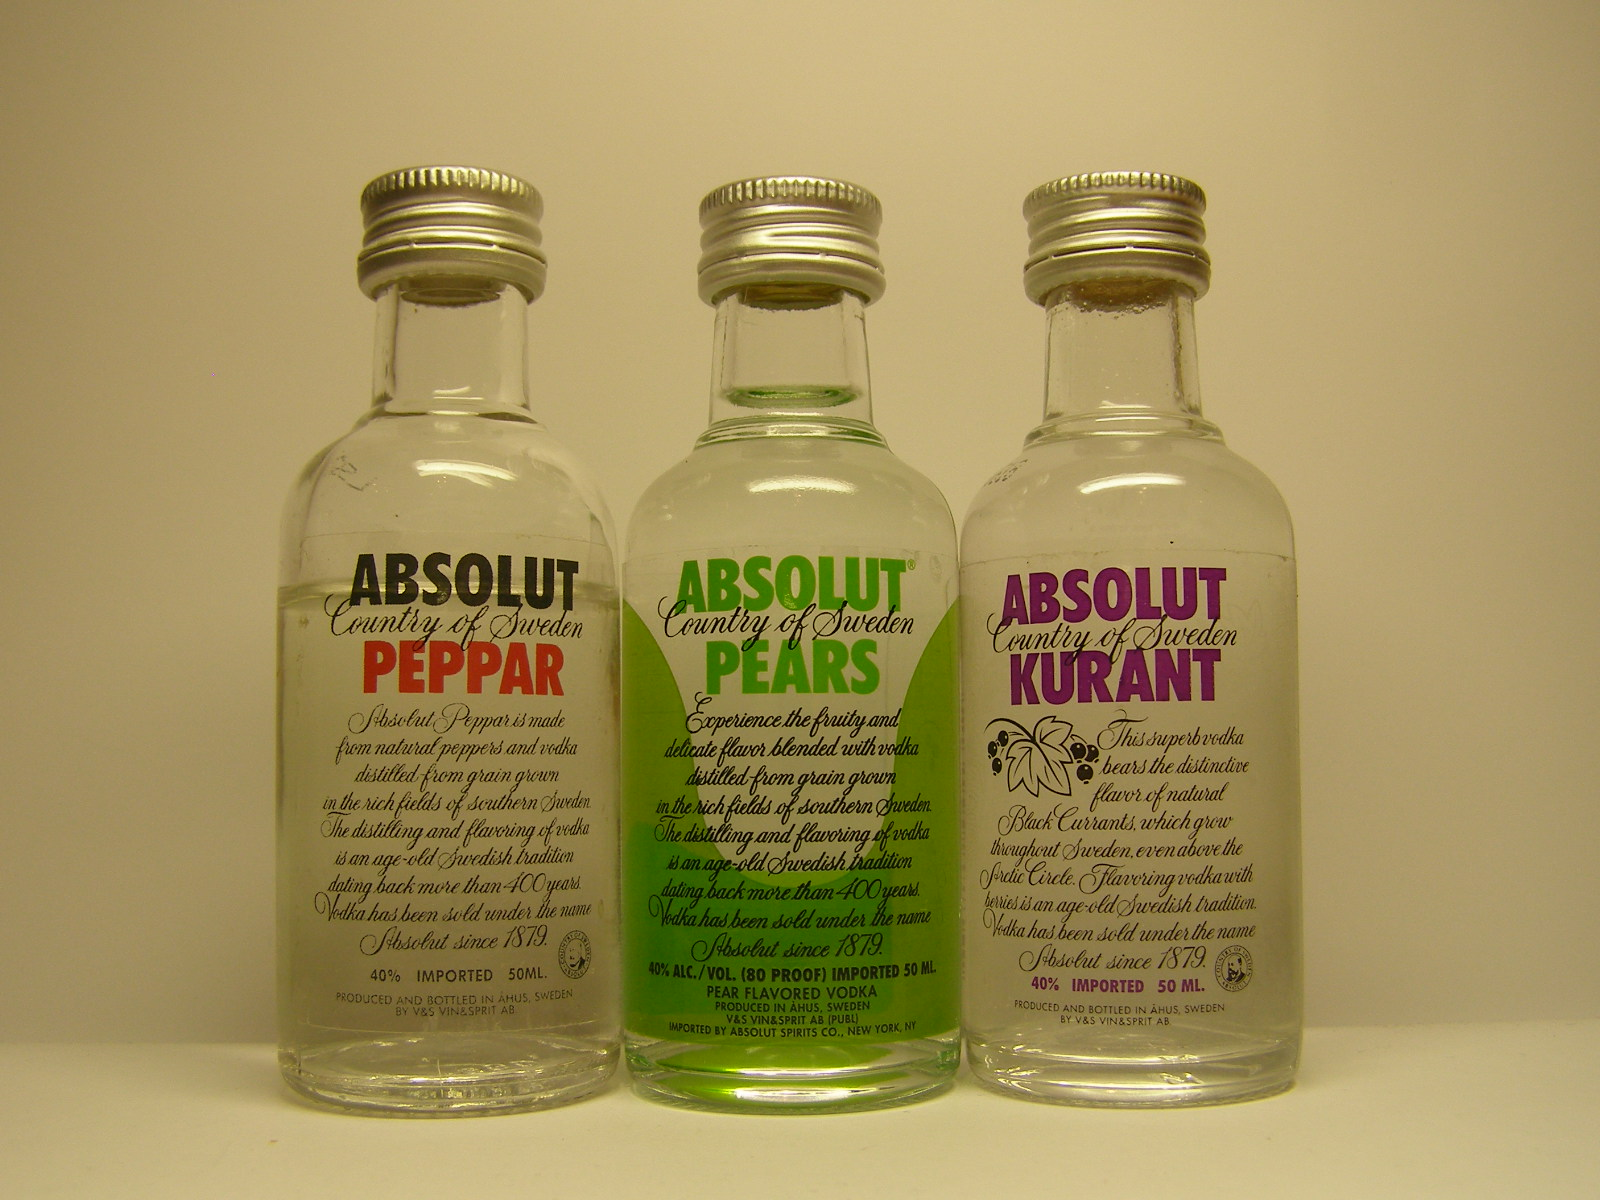 ABSOLUT Peppar - Pears - Kurant